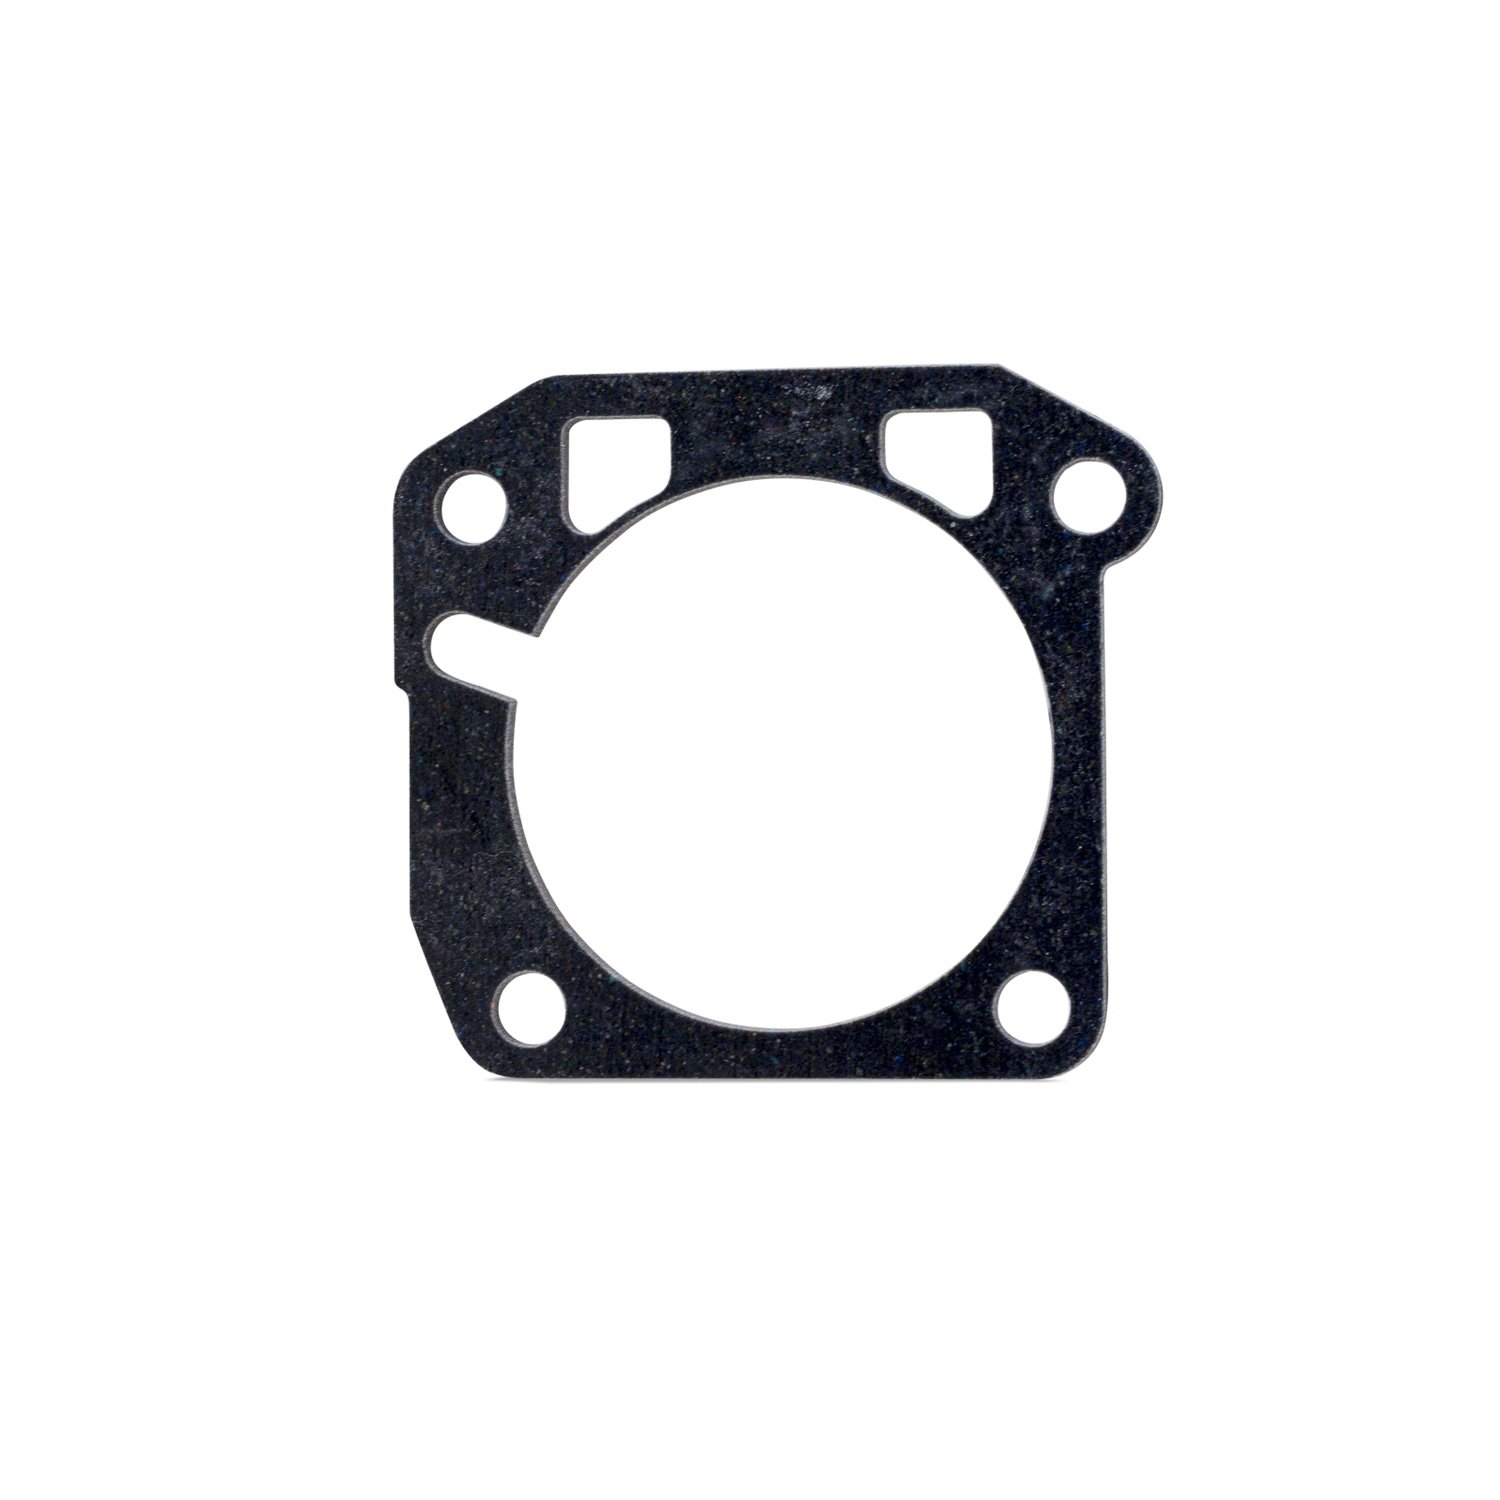 TORQUE SOLUTION THERMAL TB THROTTLE BODY GASKET HONDA PRELUDE 1997-2001